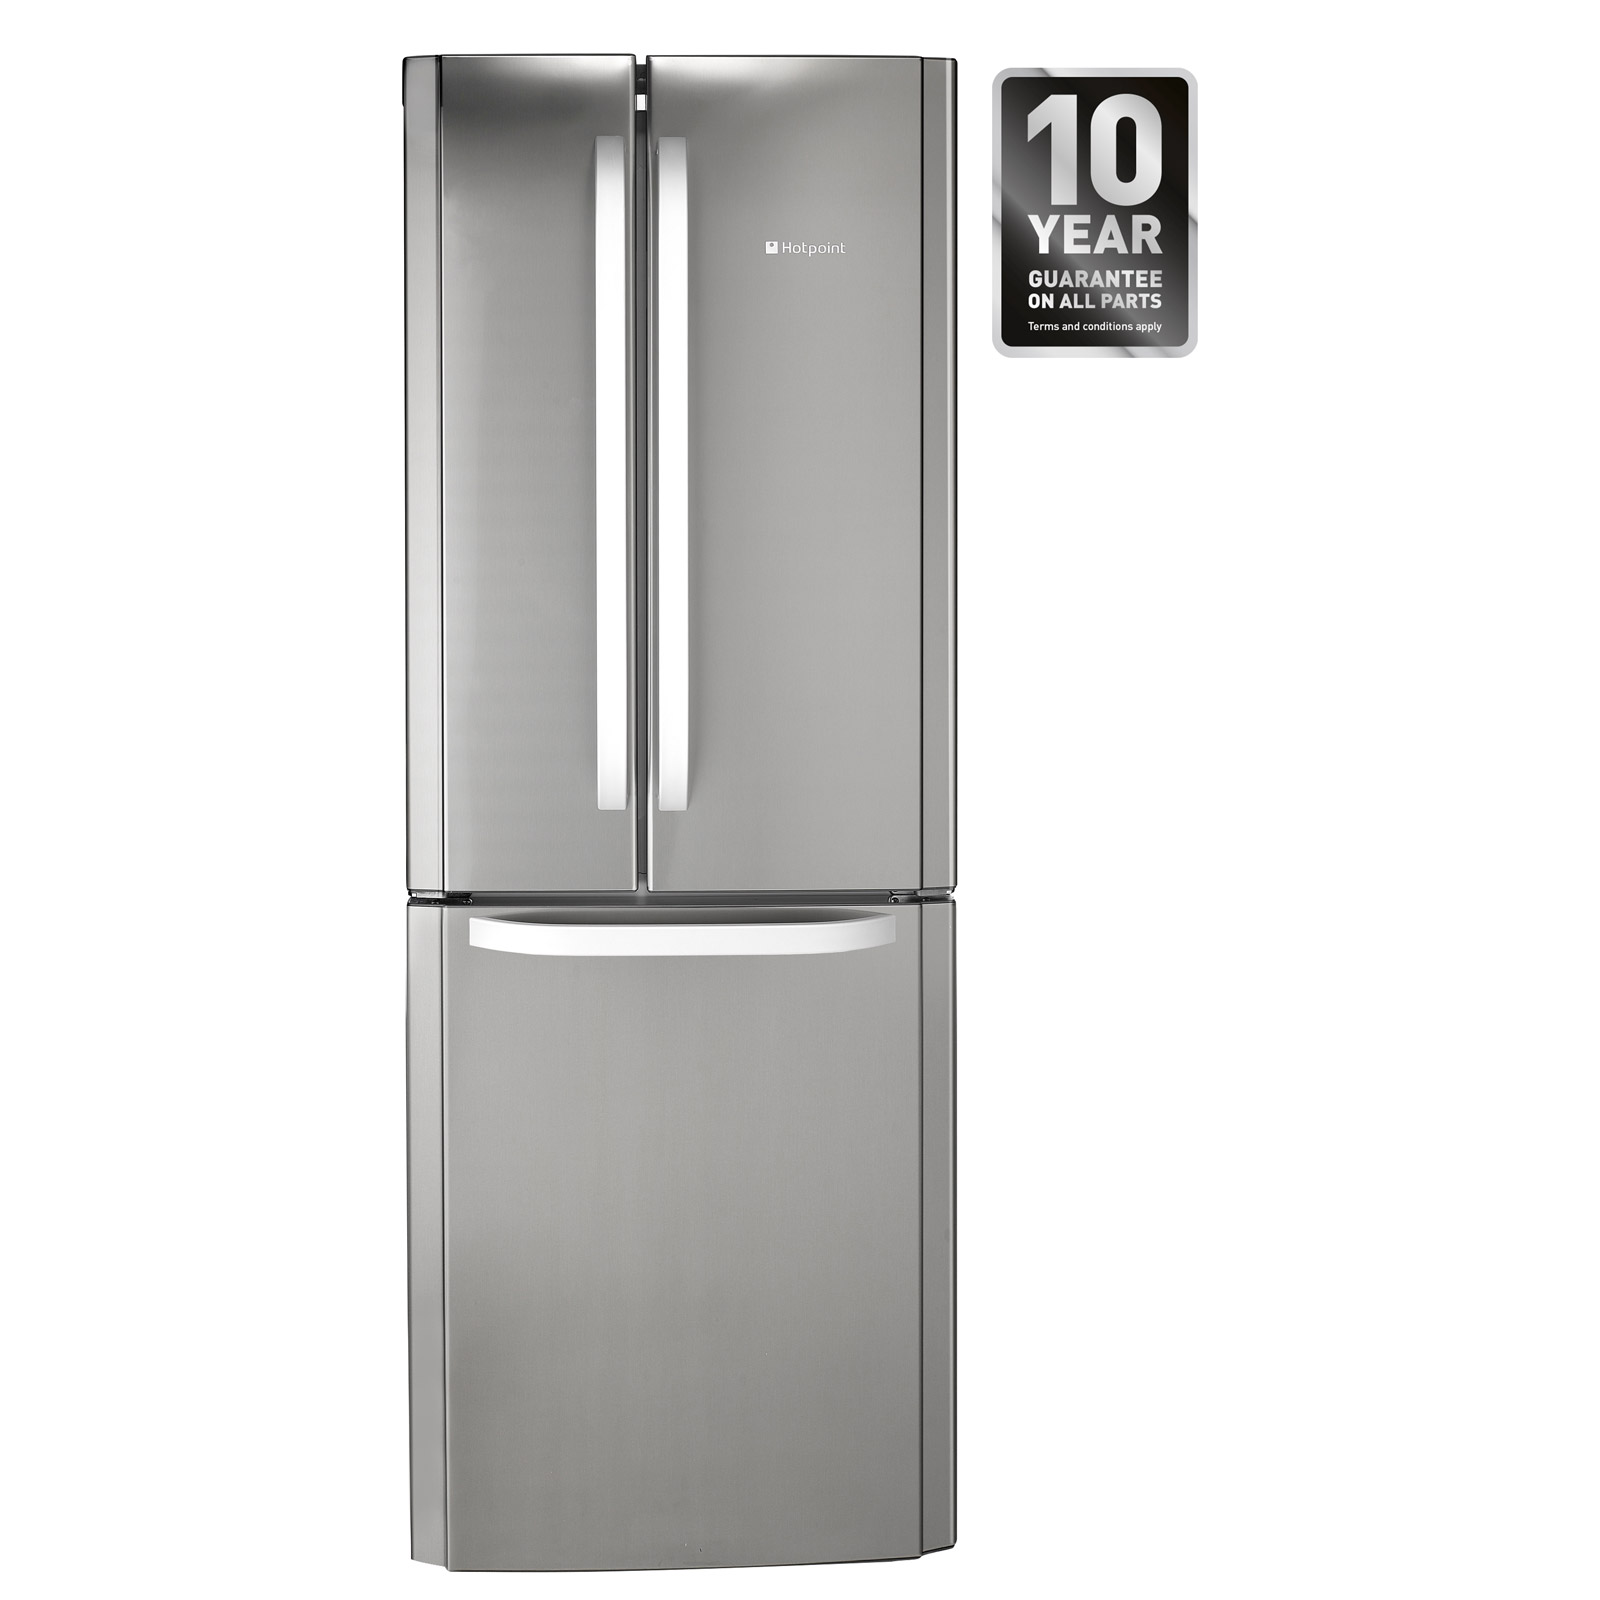 hotpoint ffu3dx 70cm 3 door frost free fridge freezer in st st 1 96m a rh sonicdirect co uk Whirlpool Corporation Haier Corporation